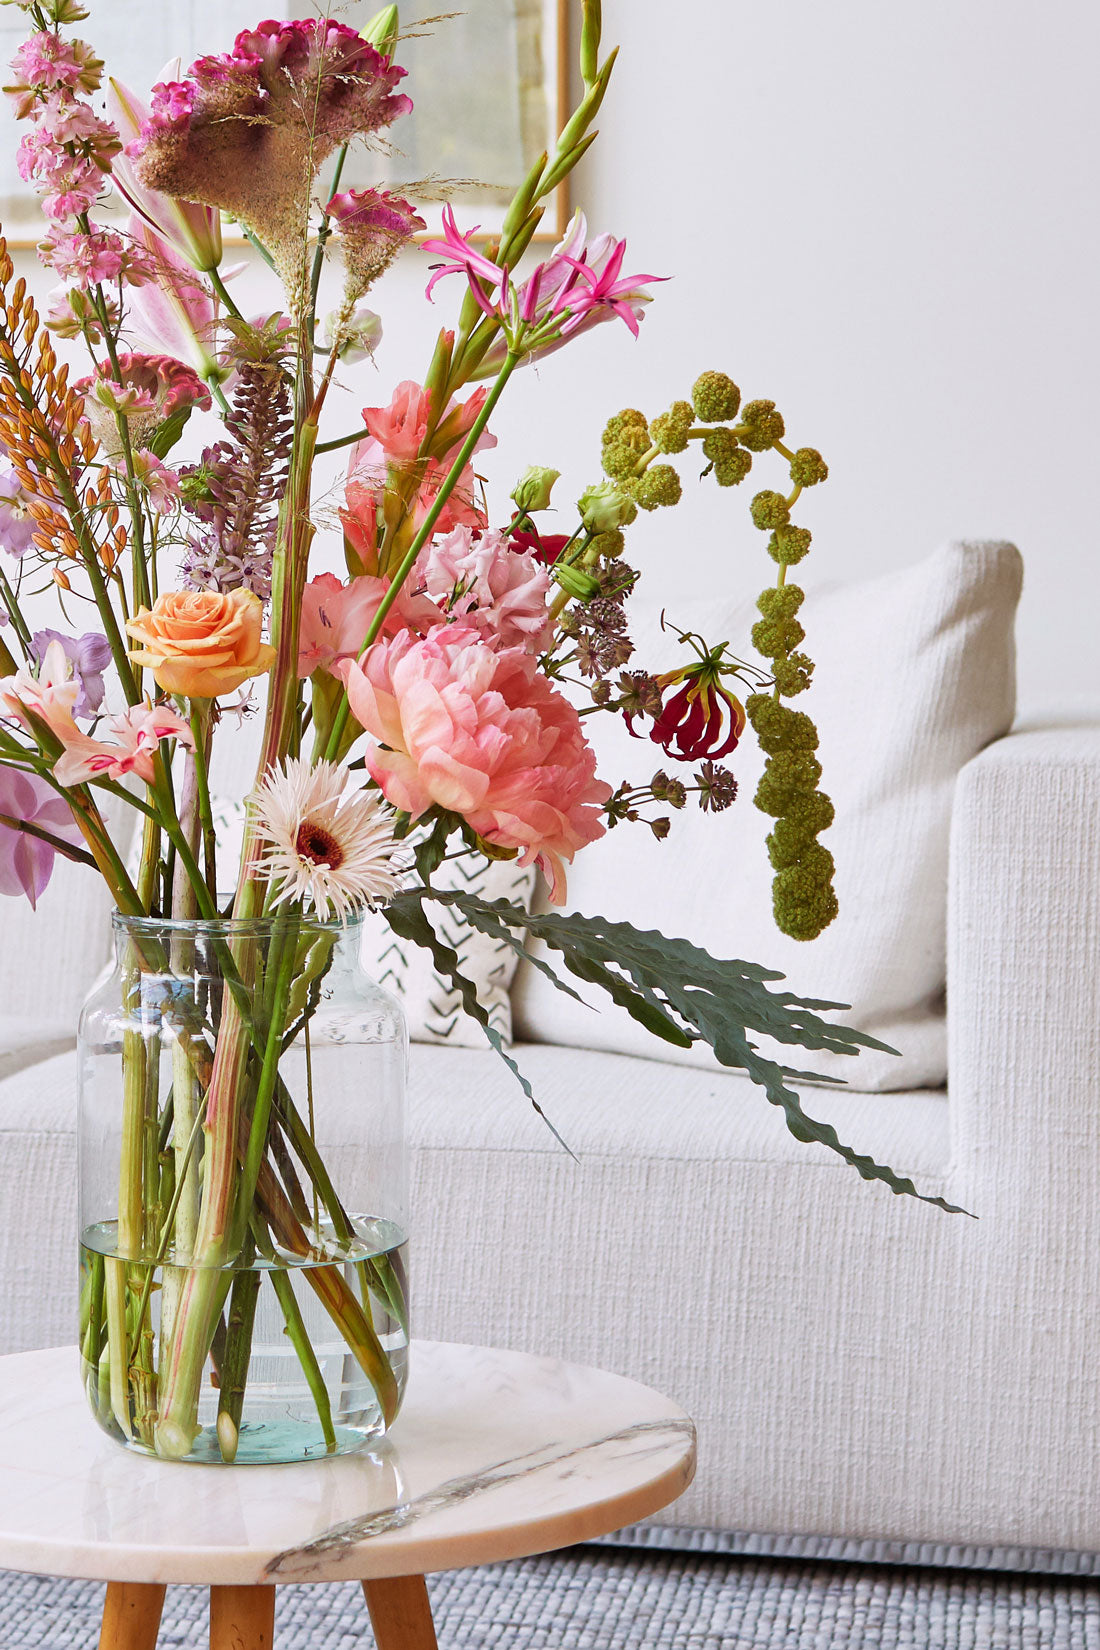 bloomon bouquet in original glass vase on a table with a bench